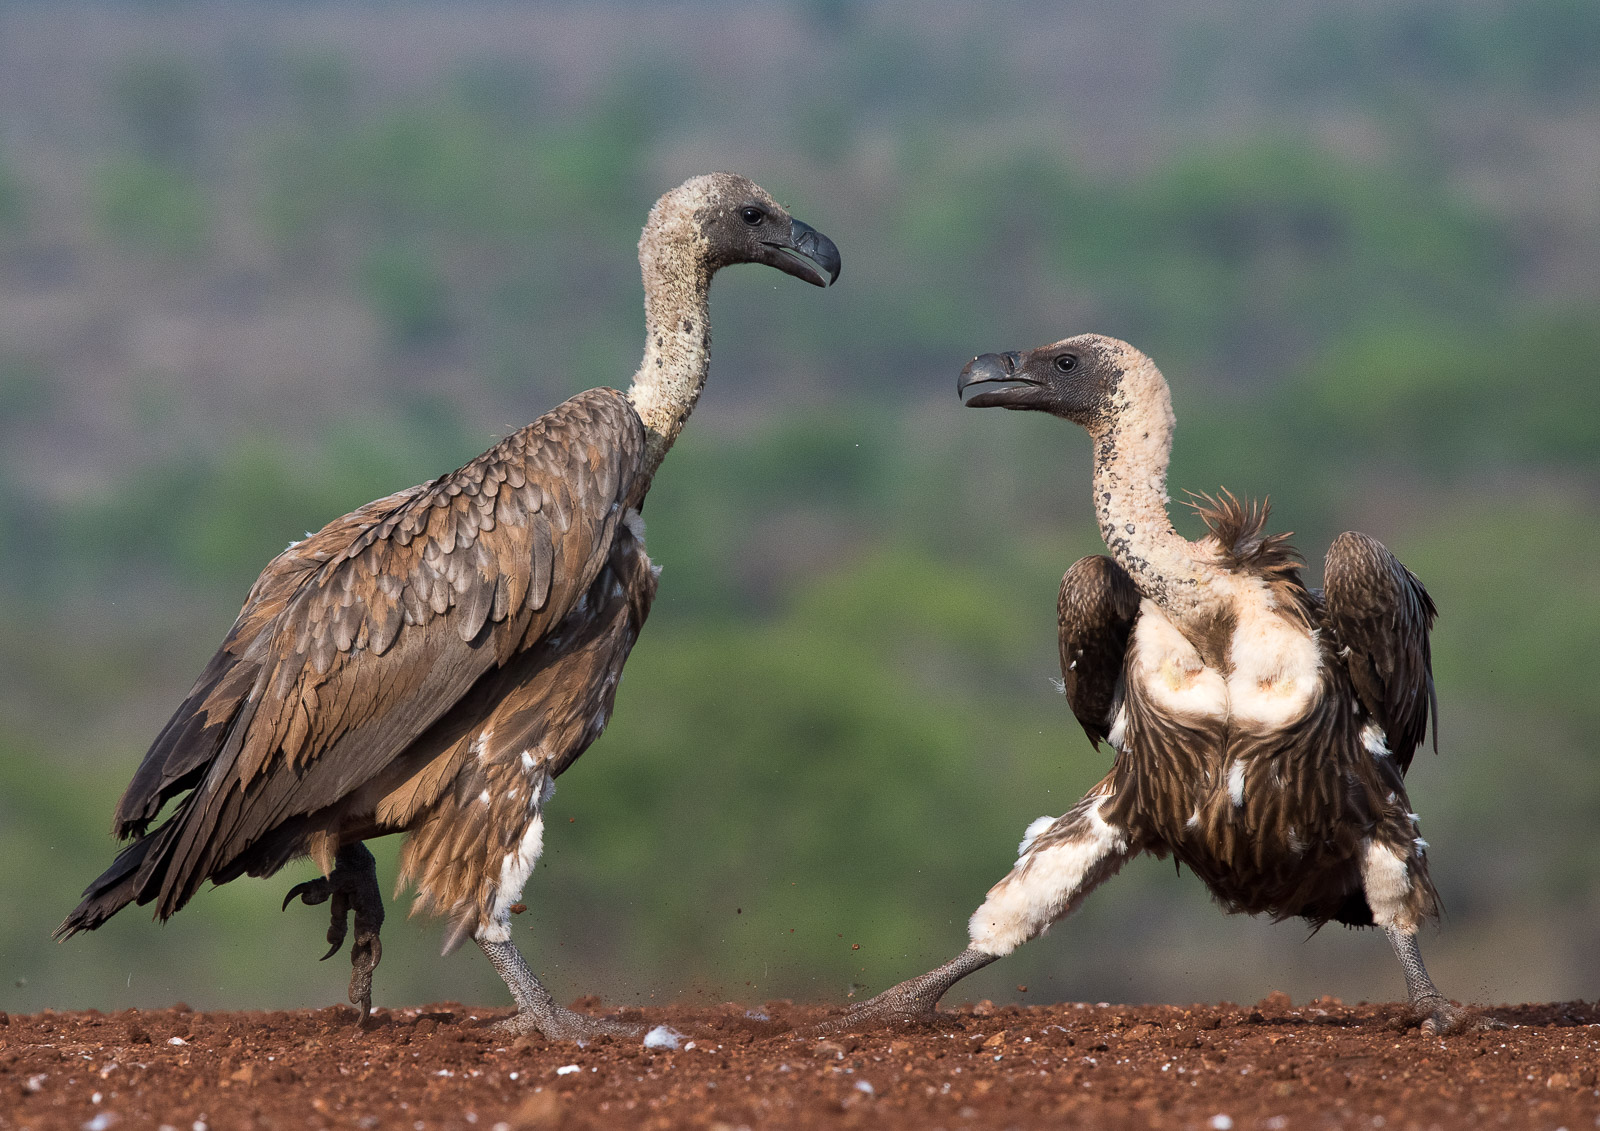 SCAVENGER: African White-backed Griffon Vulture  Nikon D810 300mm f4. 1/2000, f6.3, ISO400